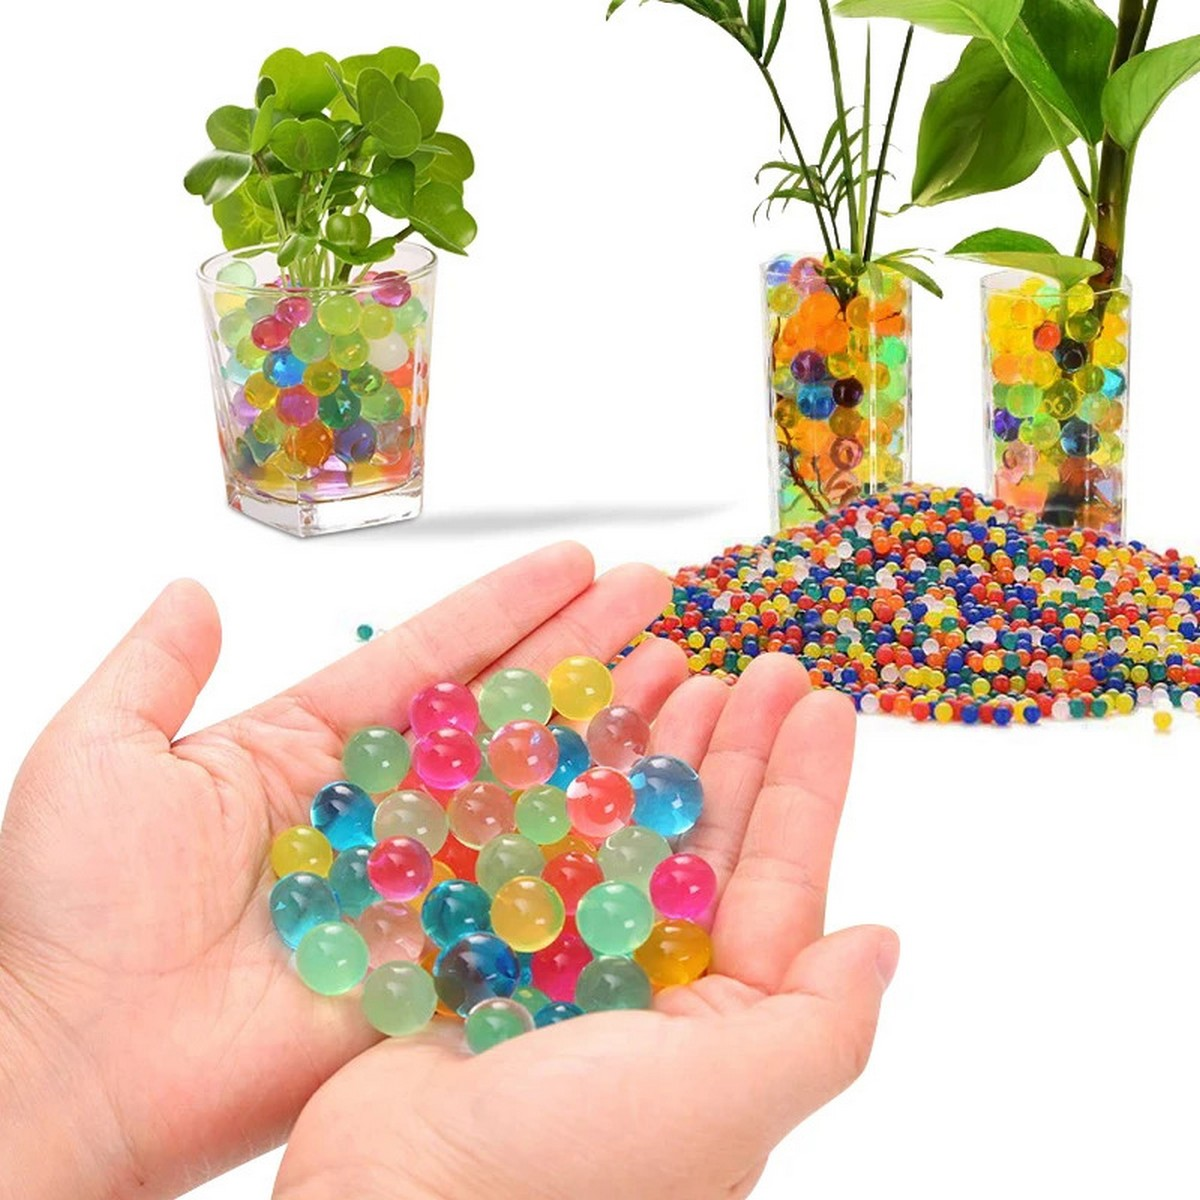 1000 Pcs Colored Orbeez Soft Crystal Water Balls Magic Also Use In Decoration Table Plants And Many More